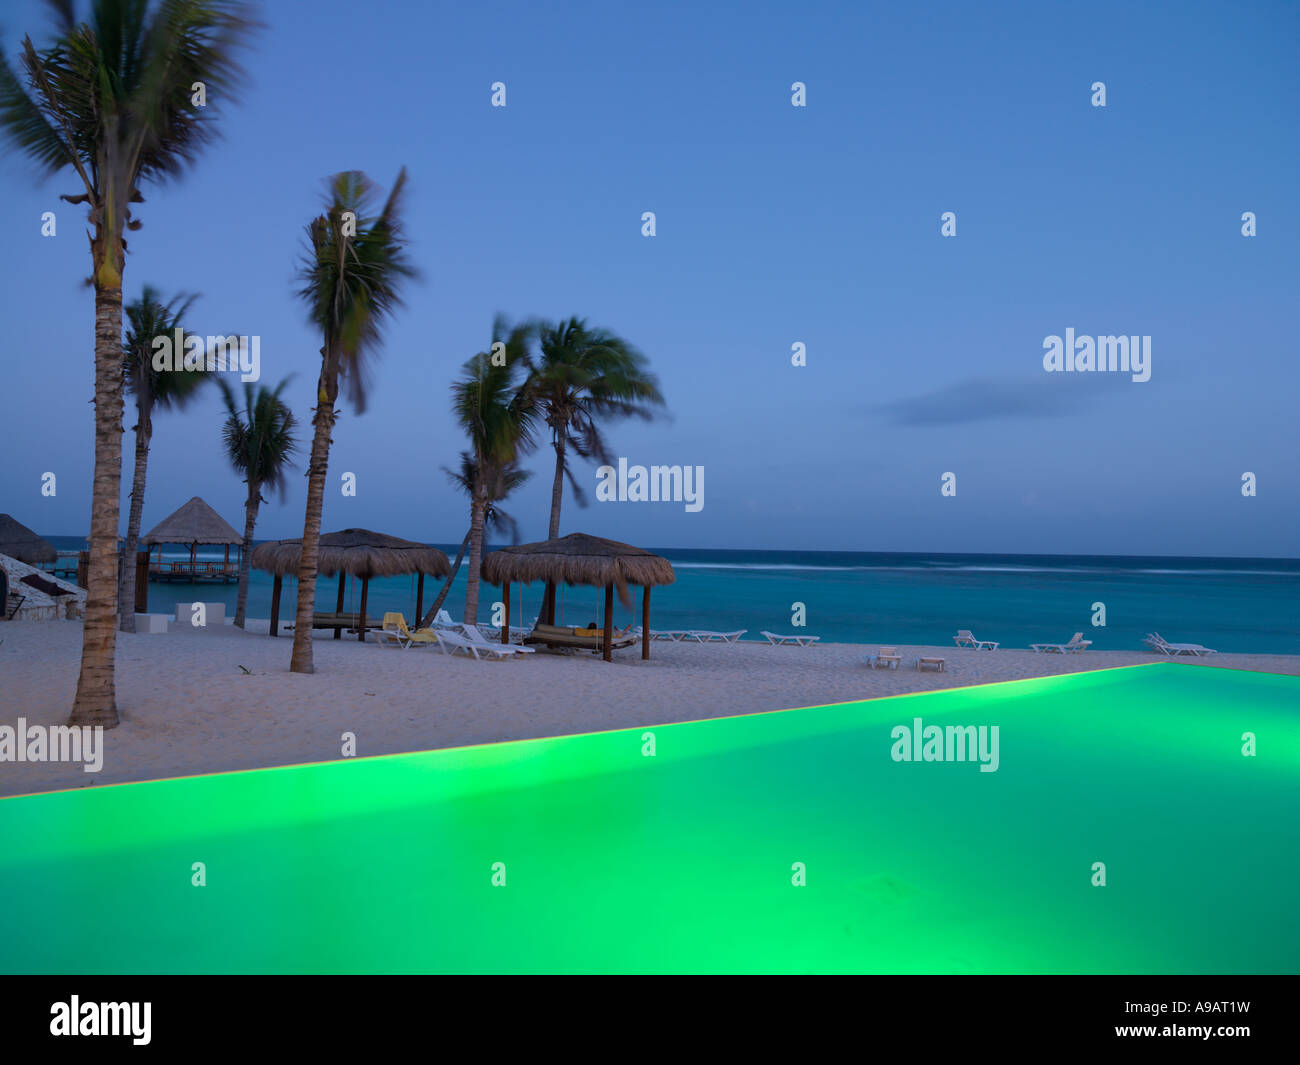 Le Mexique Péninsule du Yucatan Quintana Roo Cancun Riviera Maya piscine à débordement illuminée Photo Stock